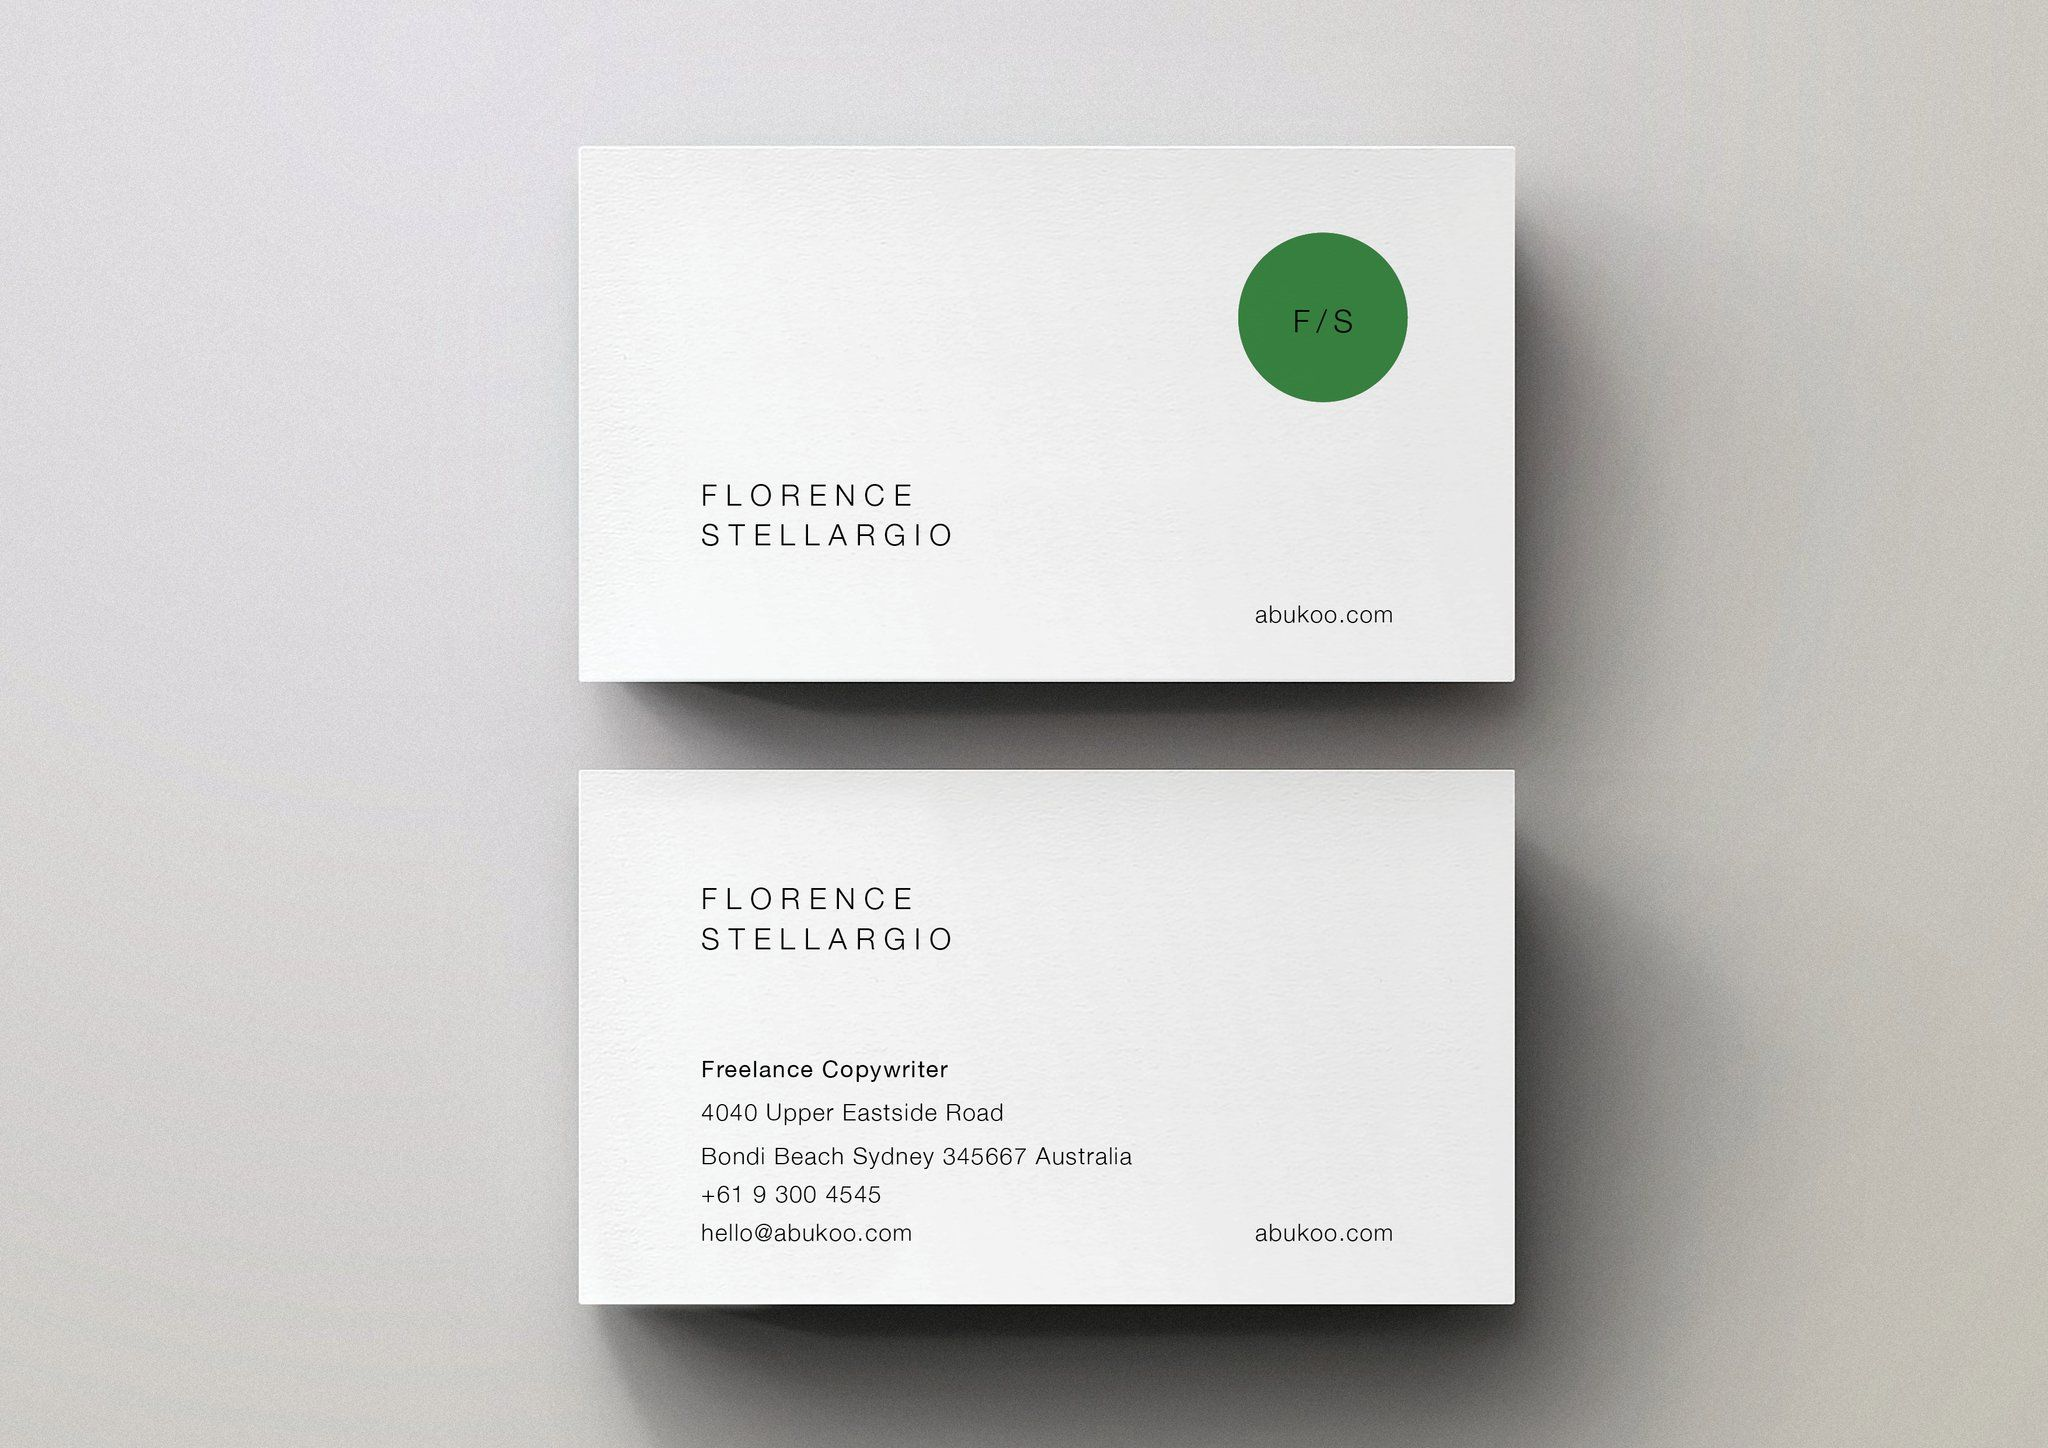 Minimal Business Cards | Pinterest | Minimal business card, Business ...